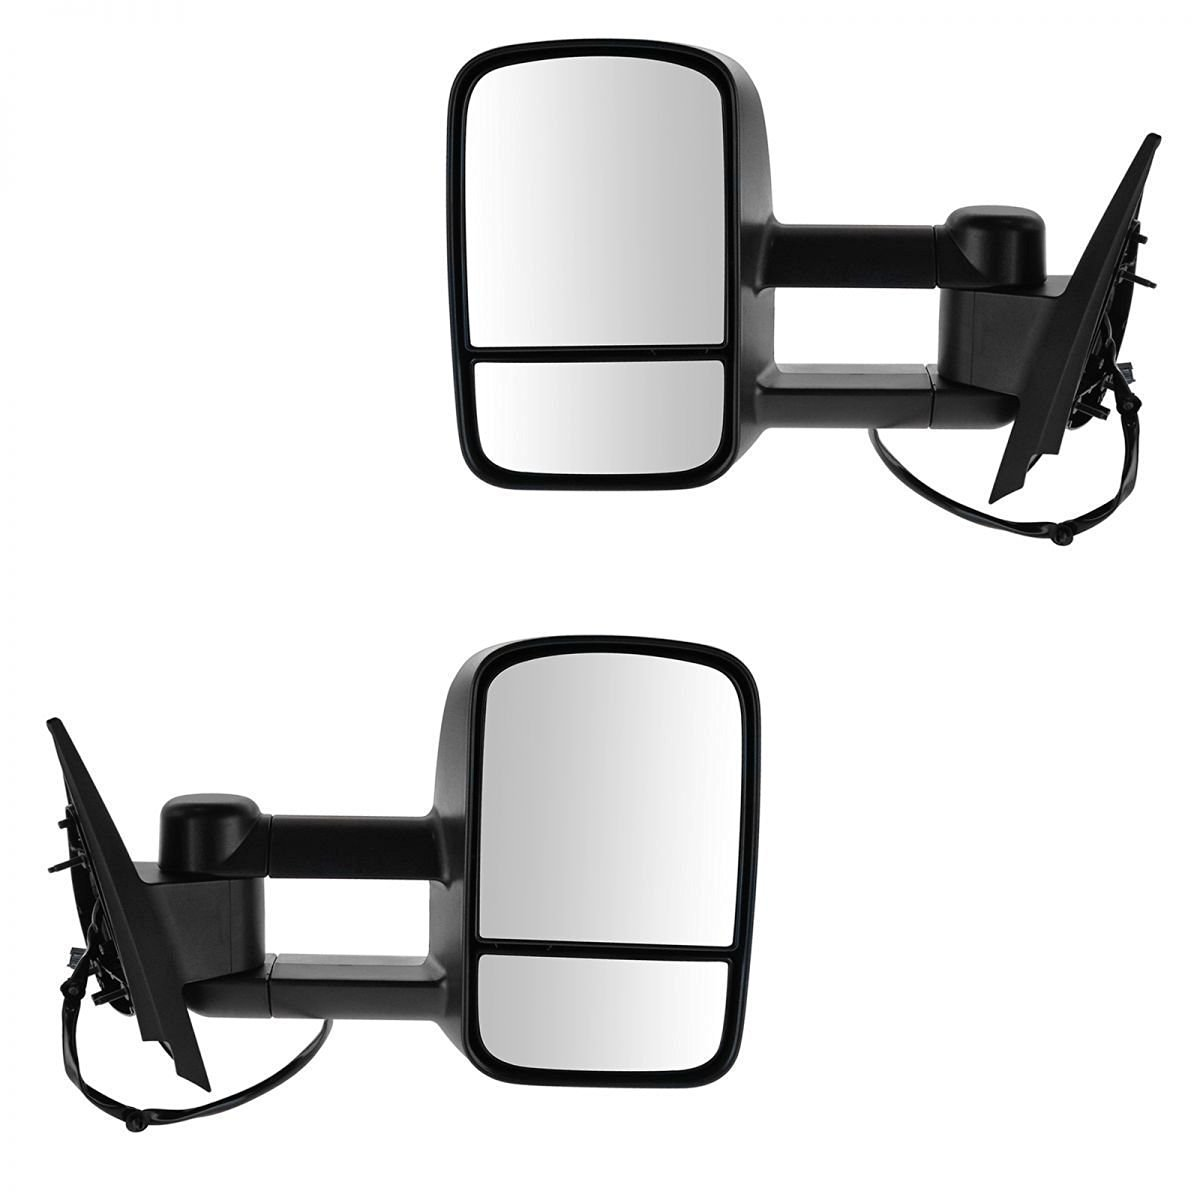 Towing Mirrors For 2007-2013 Chevy/GMC Silverado/Sierra Power Heated Side Mirror Pair (2008 2009 2010 2011 2012 models 07 New-Body Style)